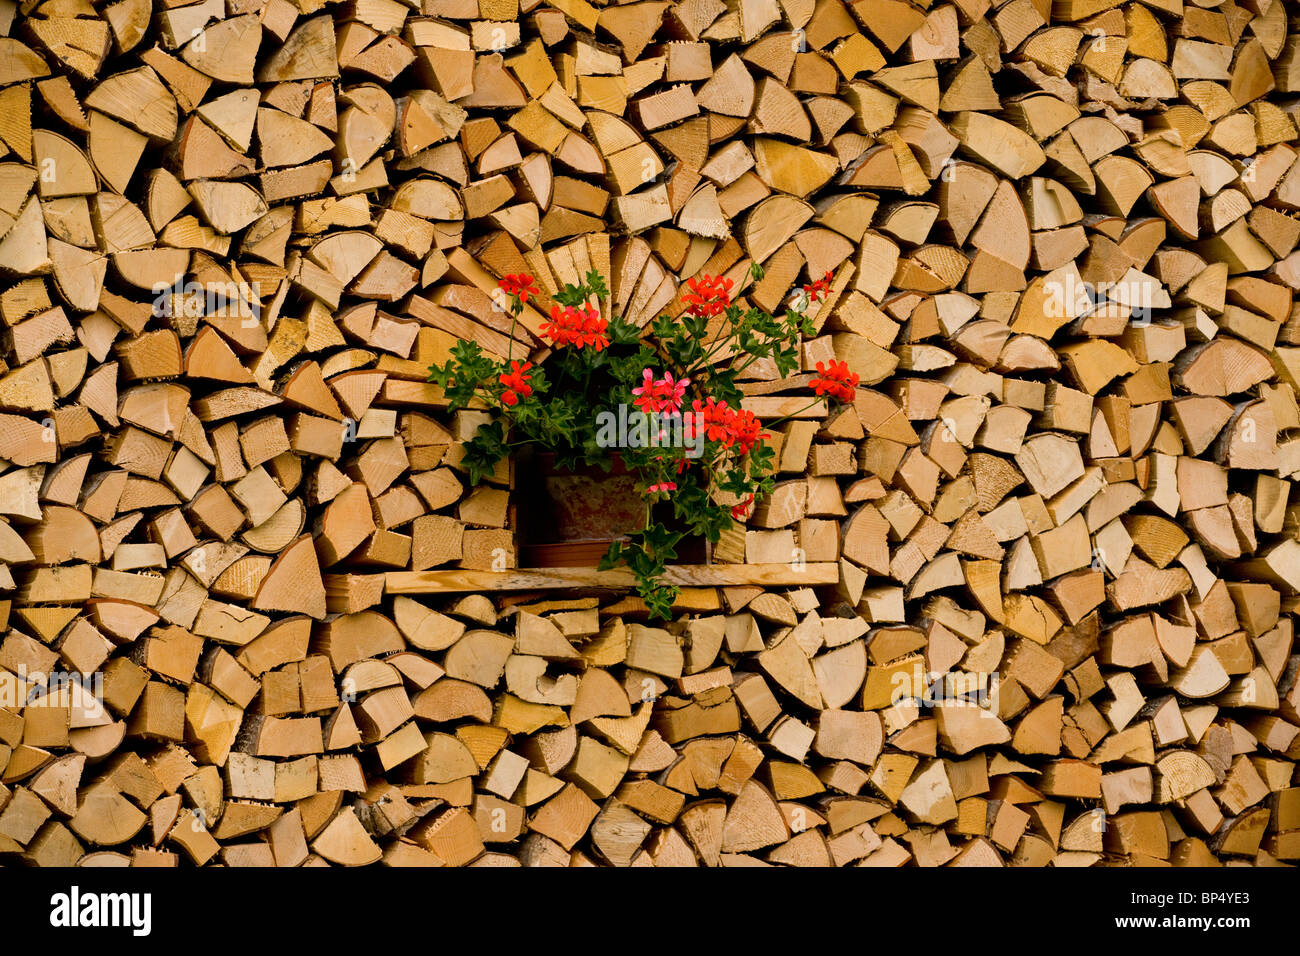 Geraniums (Pelargonium) in the middle of wood collected for winter; Wengen. Switzerland. - Stock Image